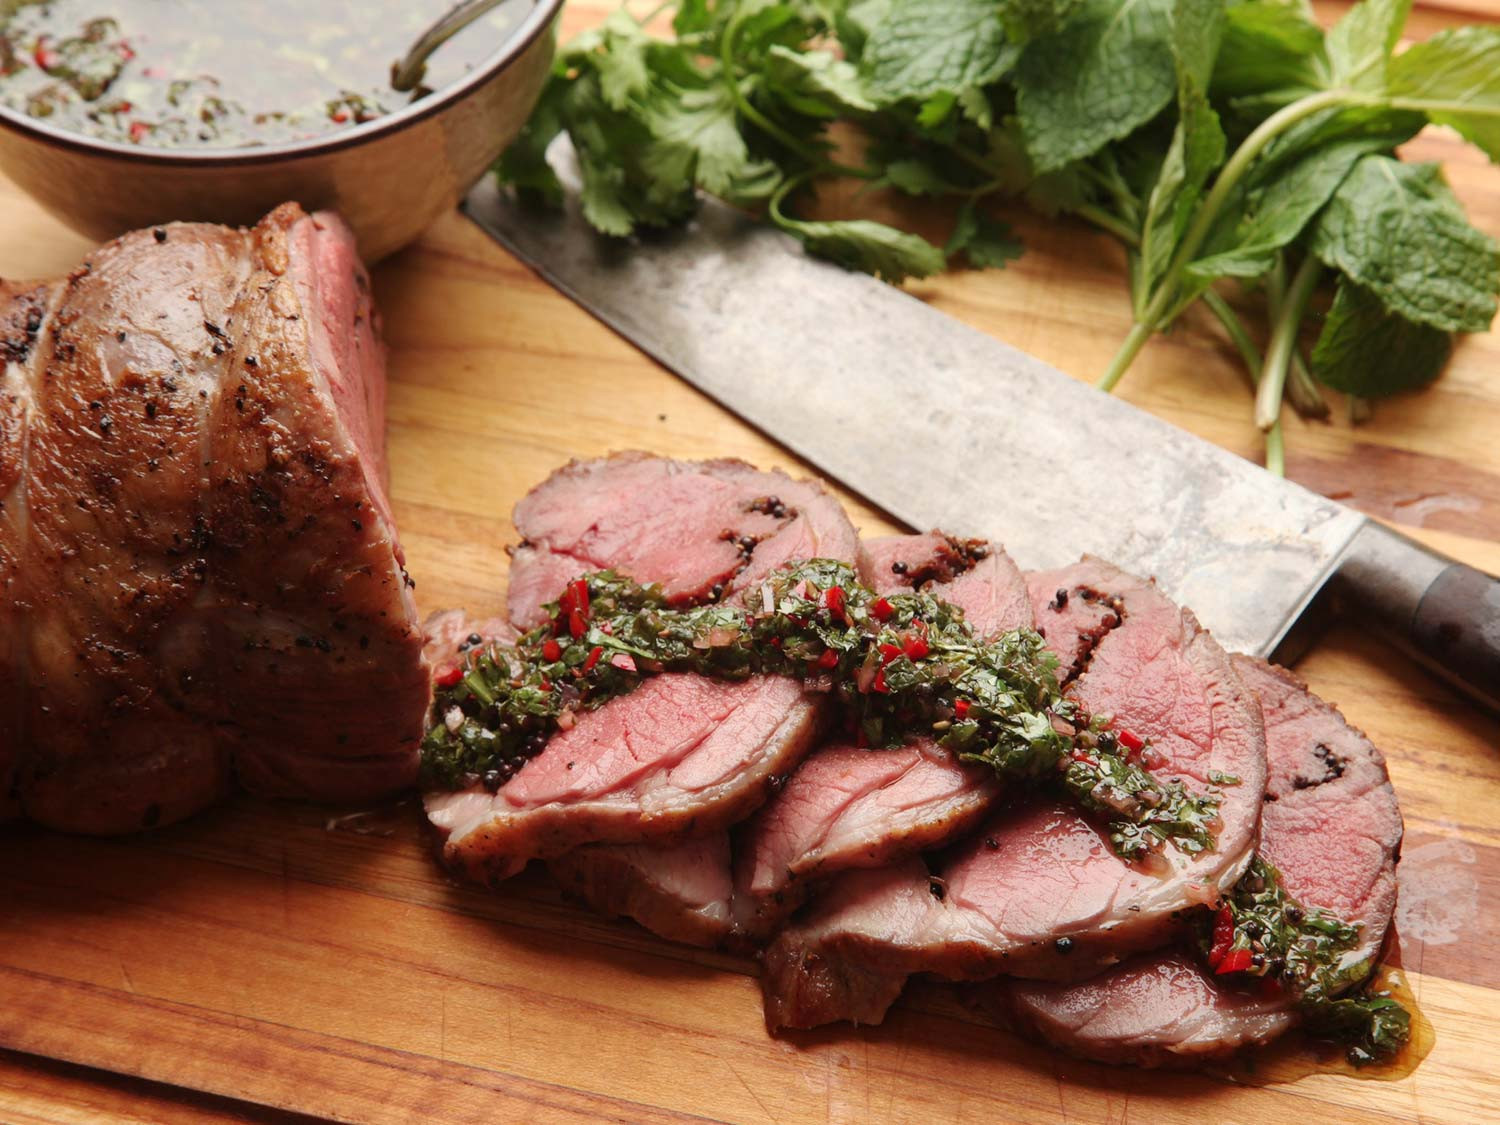 Easter Lamb Dinner Menu  What to Cook for Easter Brunch and Dinner